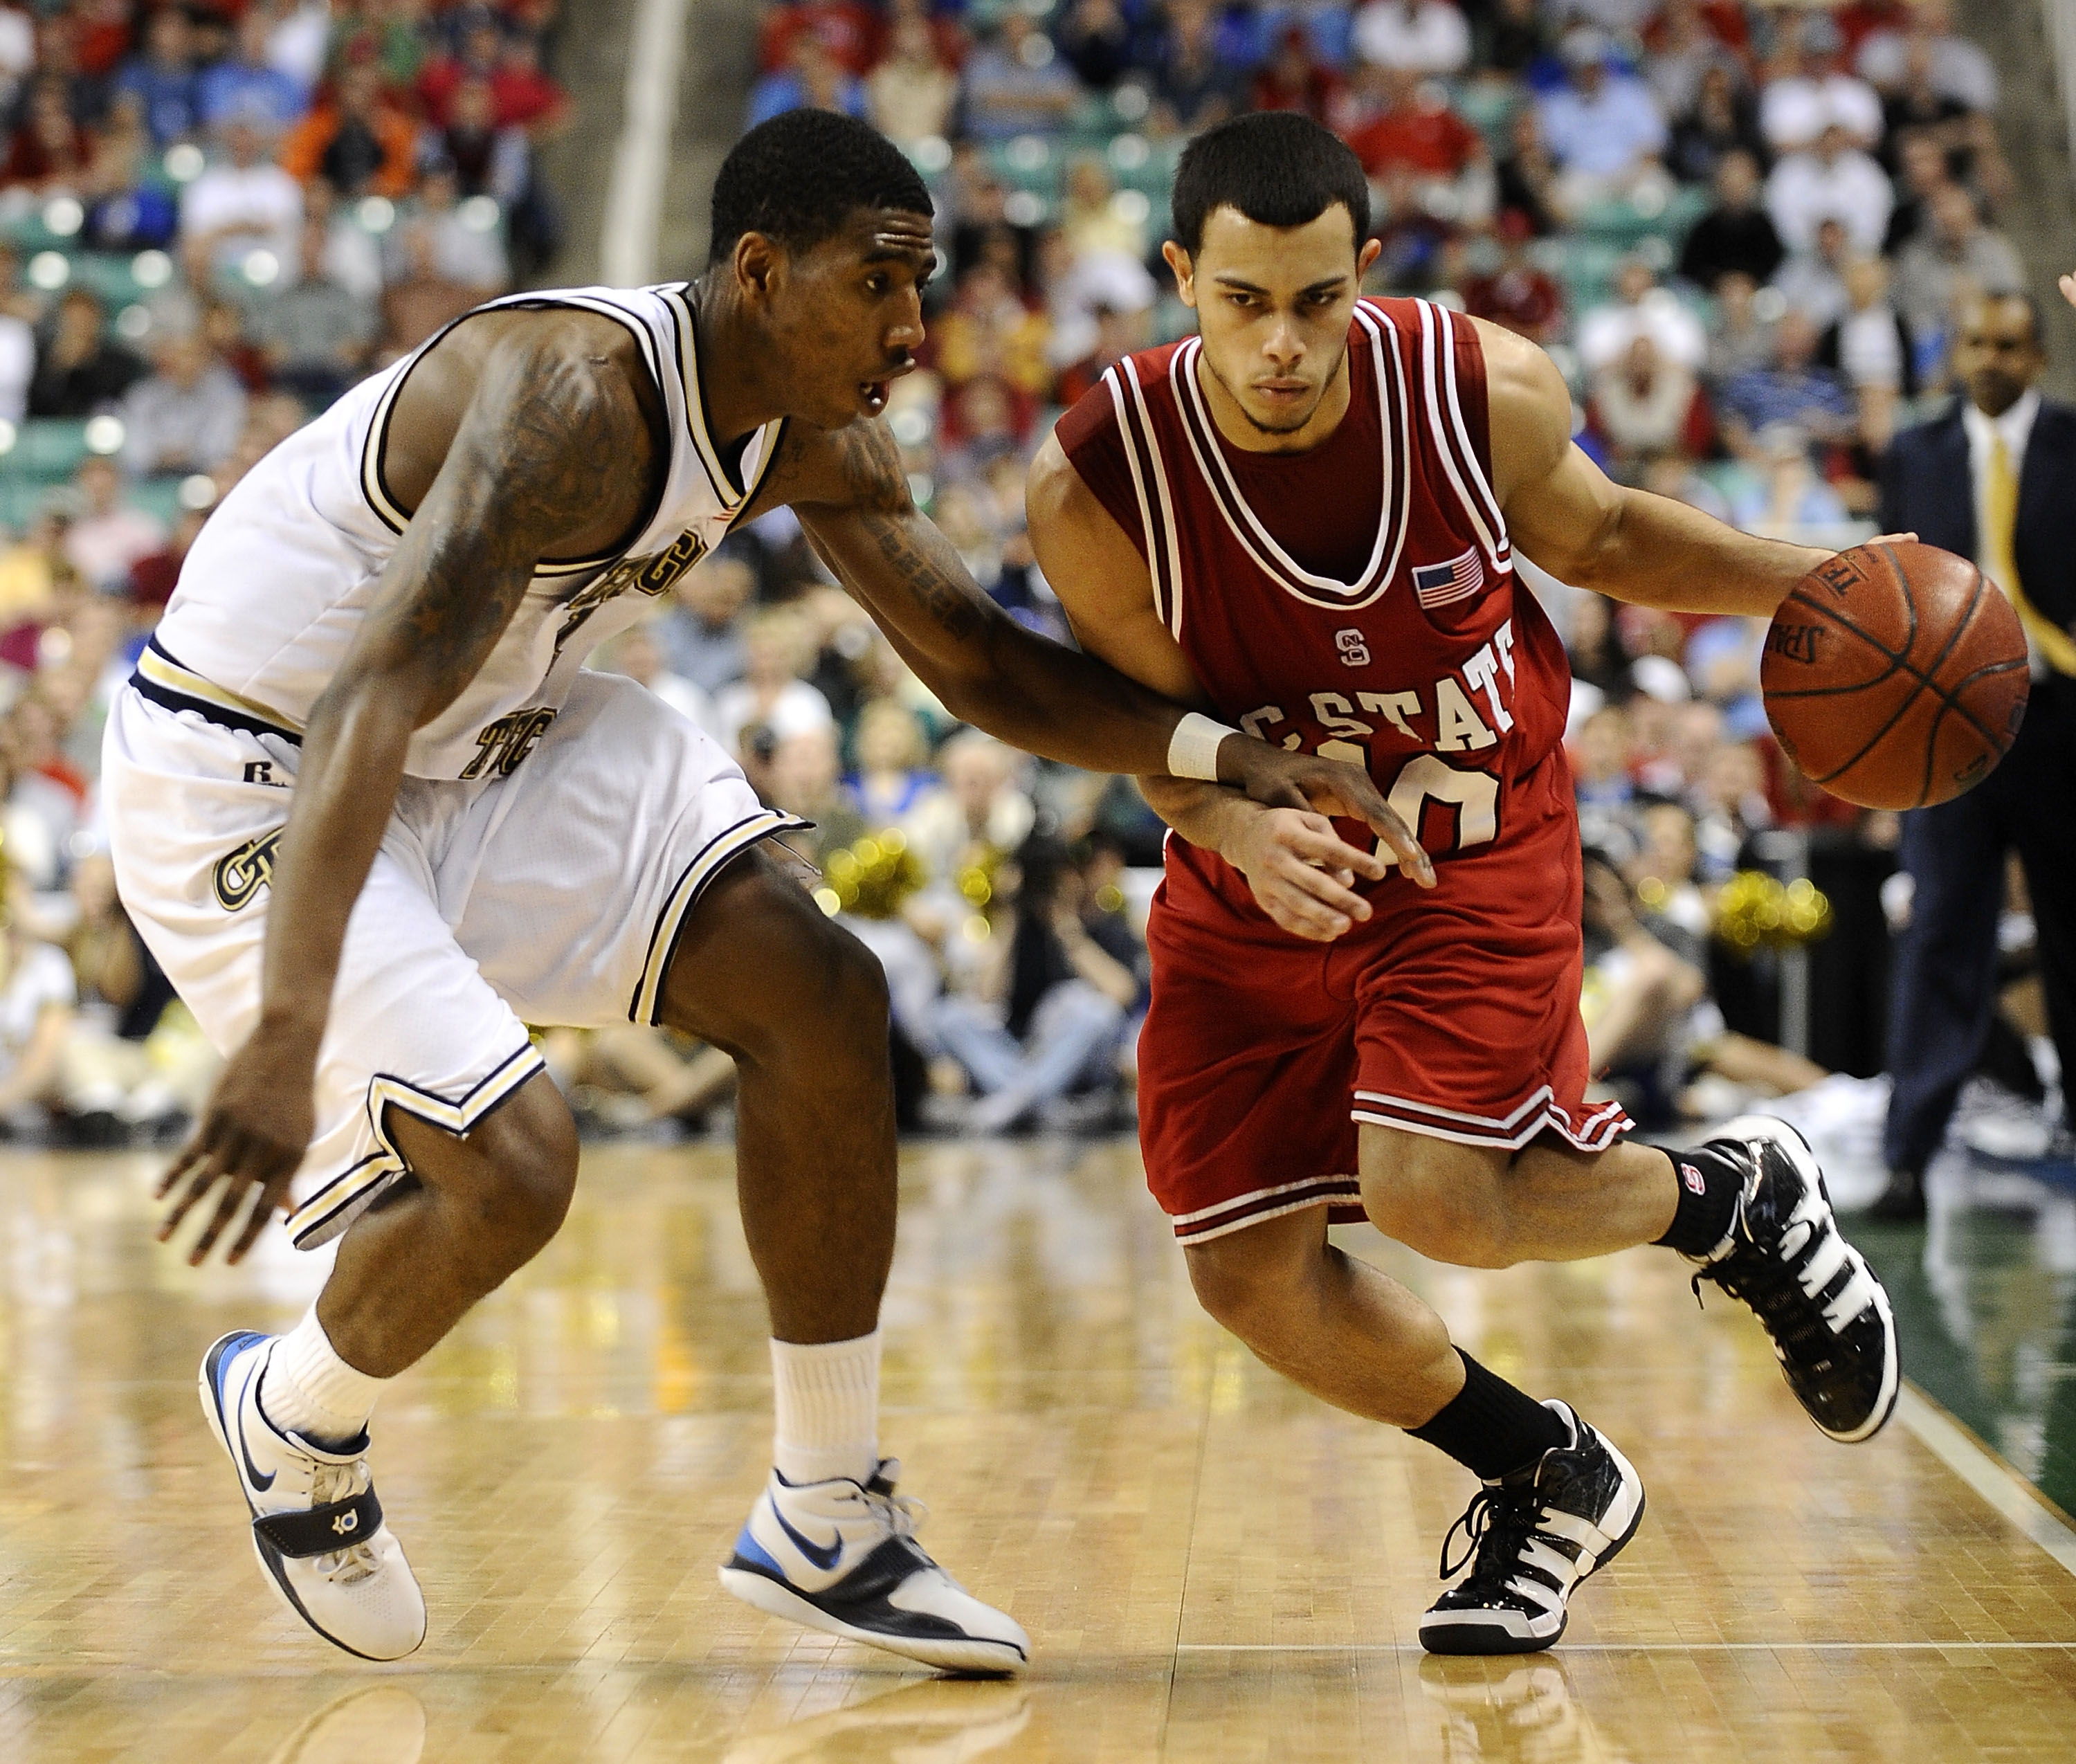 GREENSBORO, NC - MARCH 13:  Iman Shumpert #1 of the Georgia Tech Yellow Jackets guards Javier Gonzalez #10 of the North Carolina State Wolfpack in their semifinal game in the 2010 ACC Men's Basketball Tournament at the Greensboro Coliseum on on March 13,